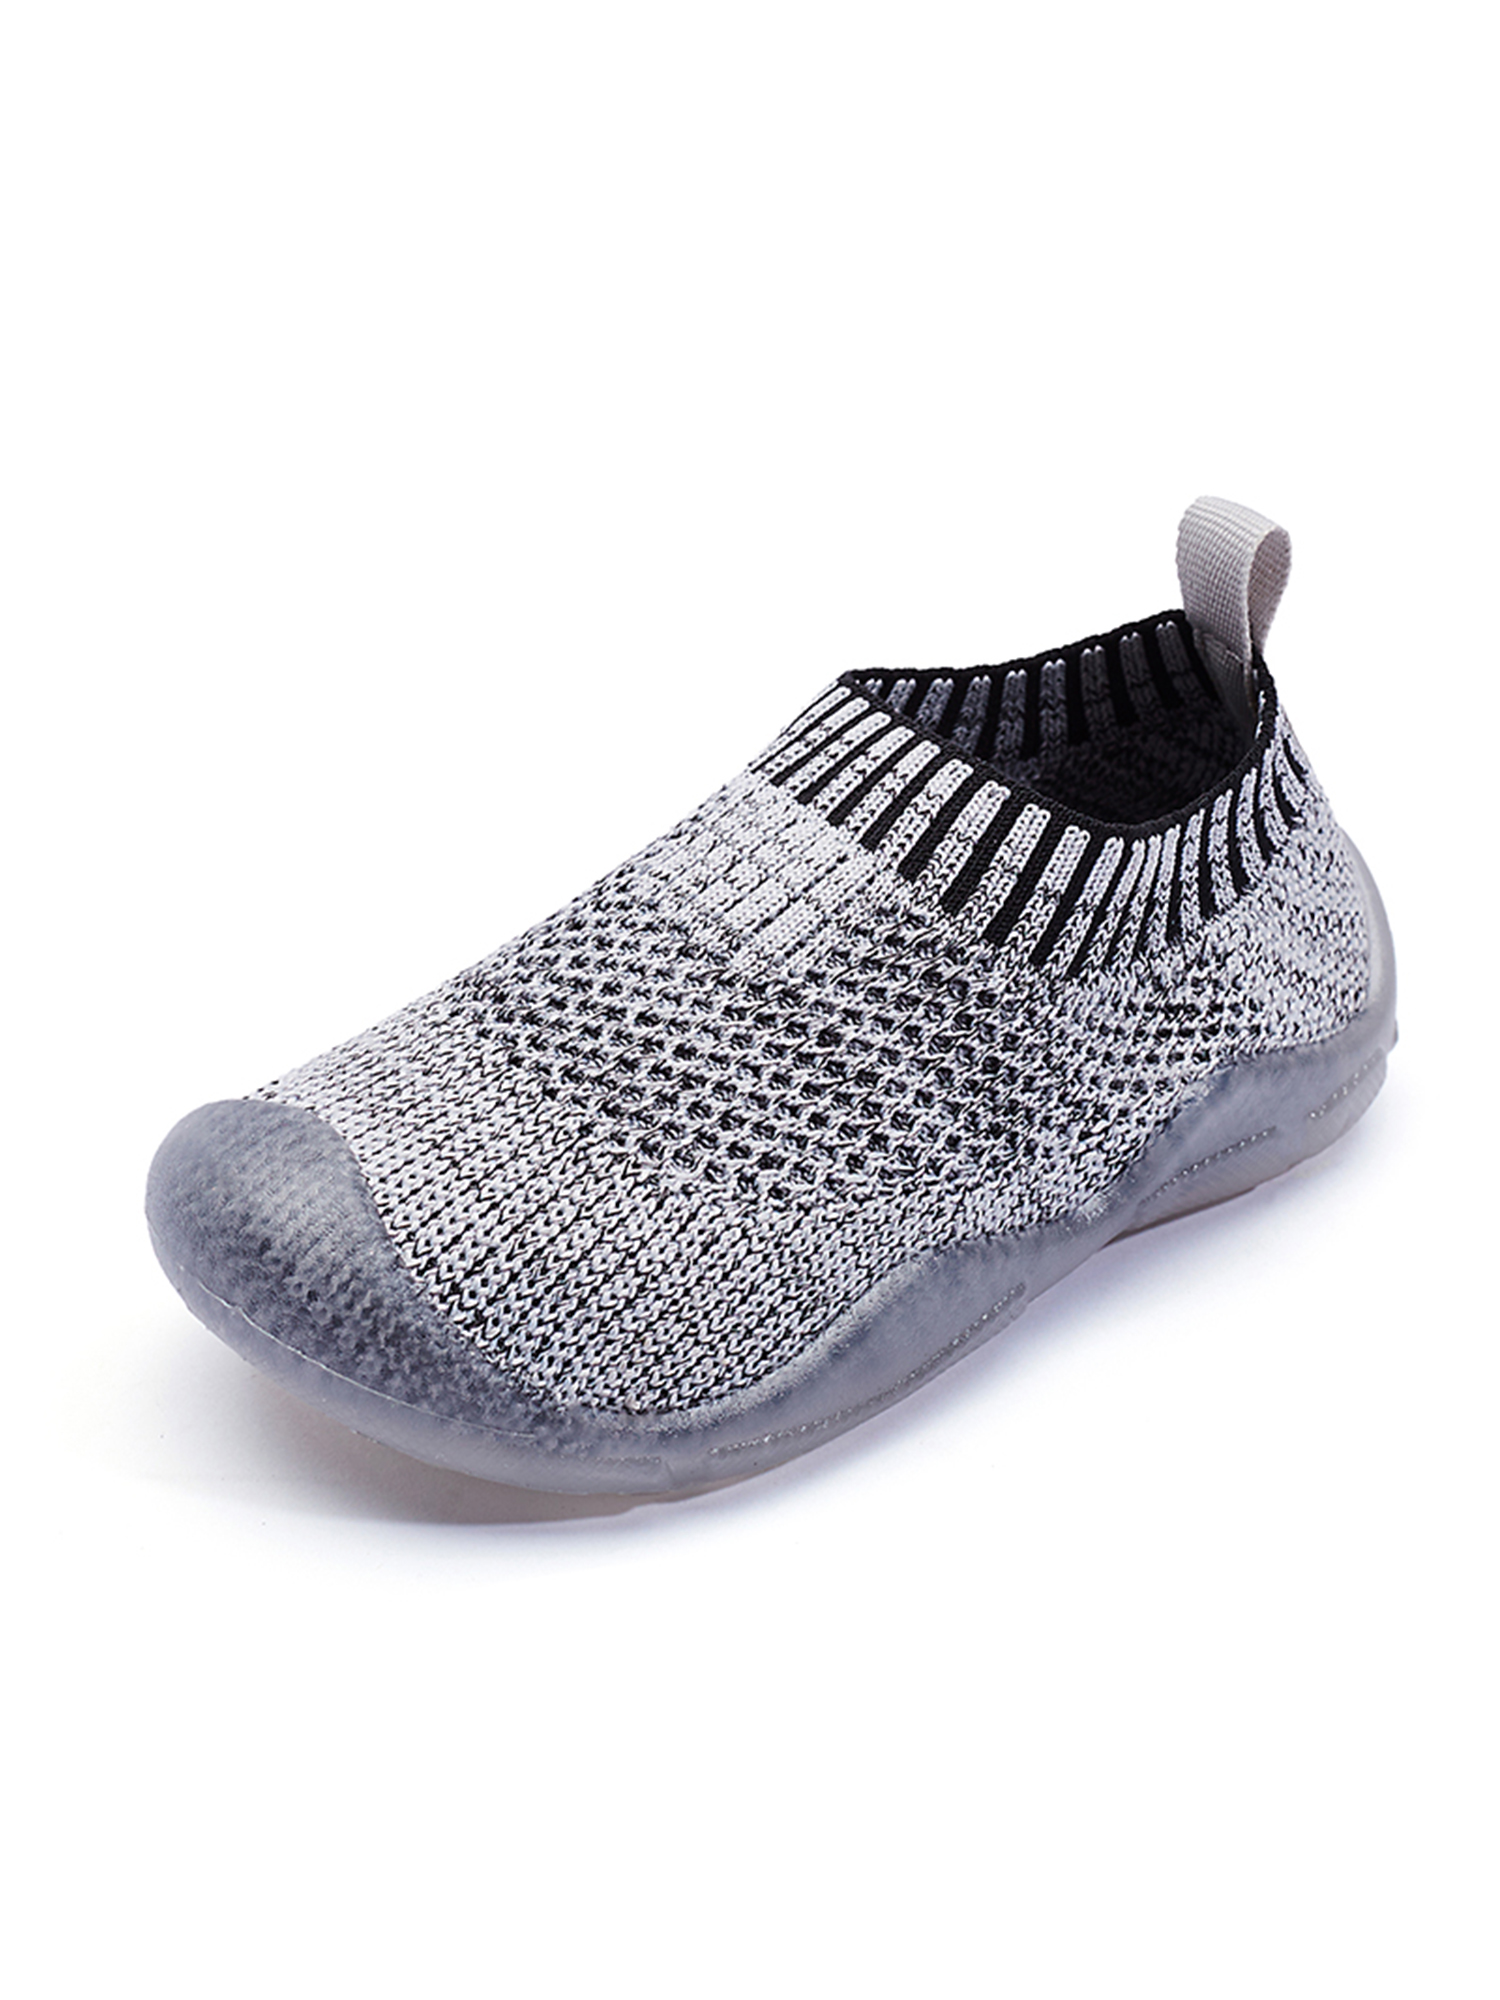 Non-Slip Knit Sneakers Athletic Sports